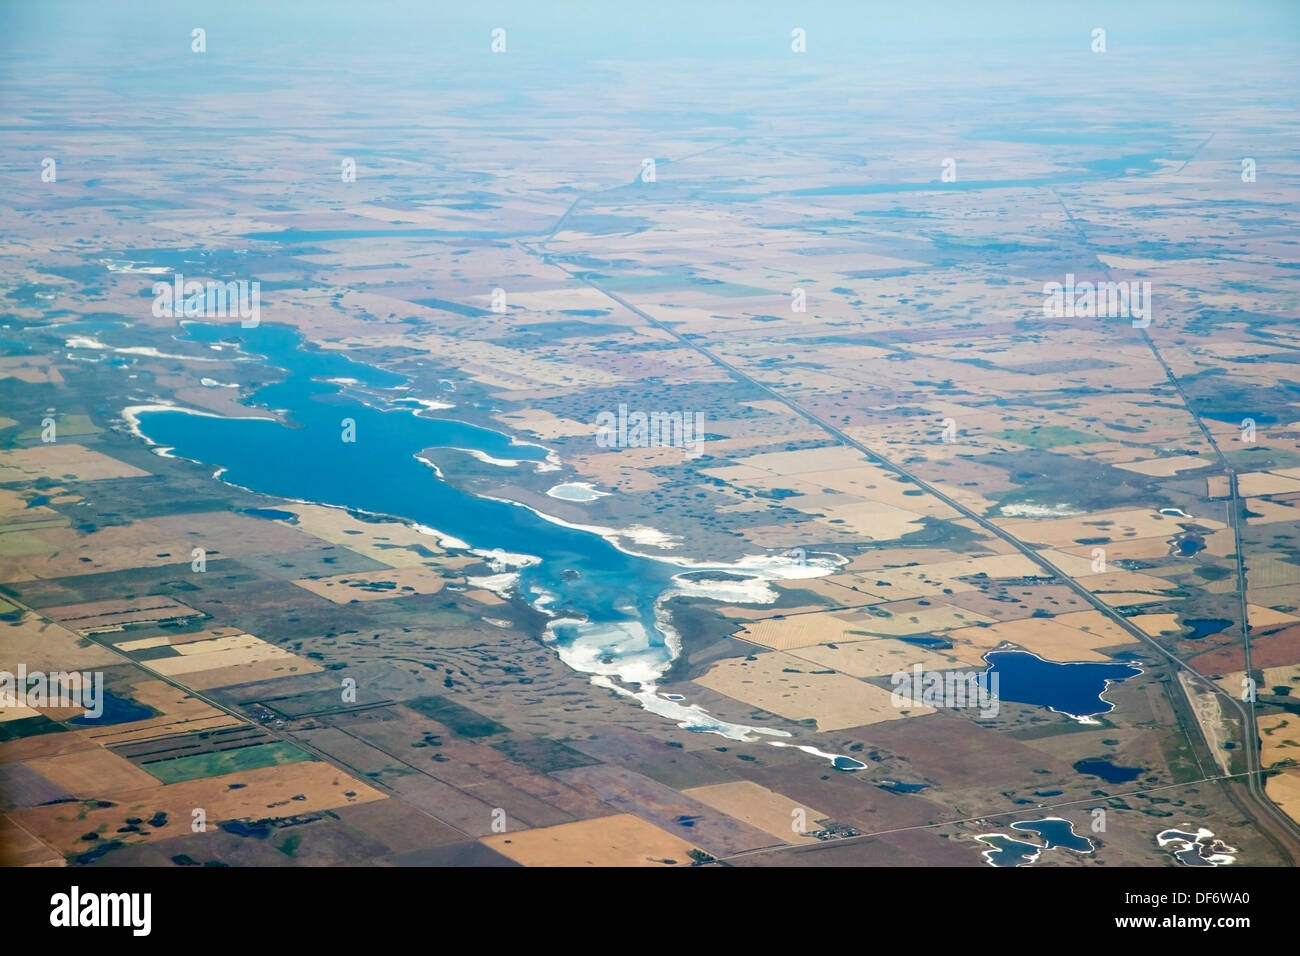 Aerial photo of saline lakes in prairie agricultural landscape - Stock Image